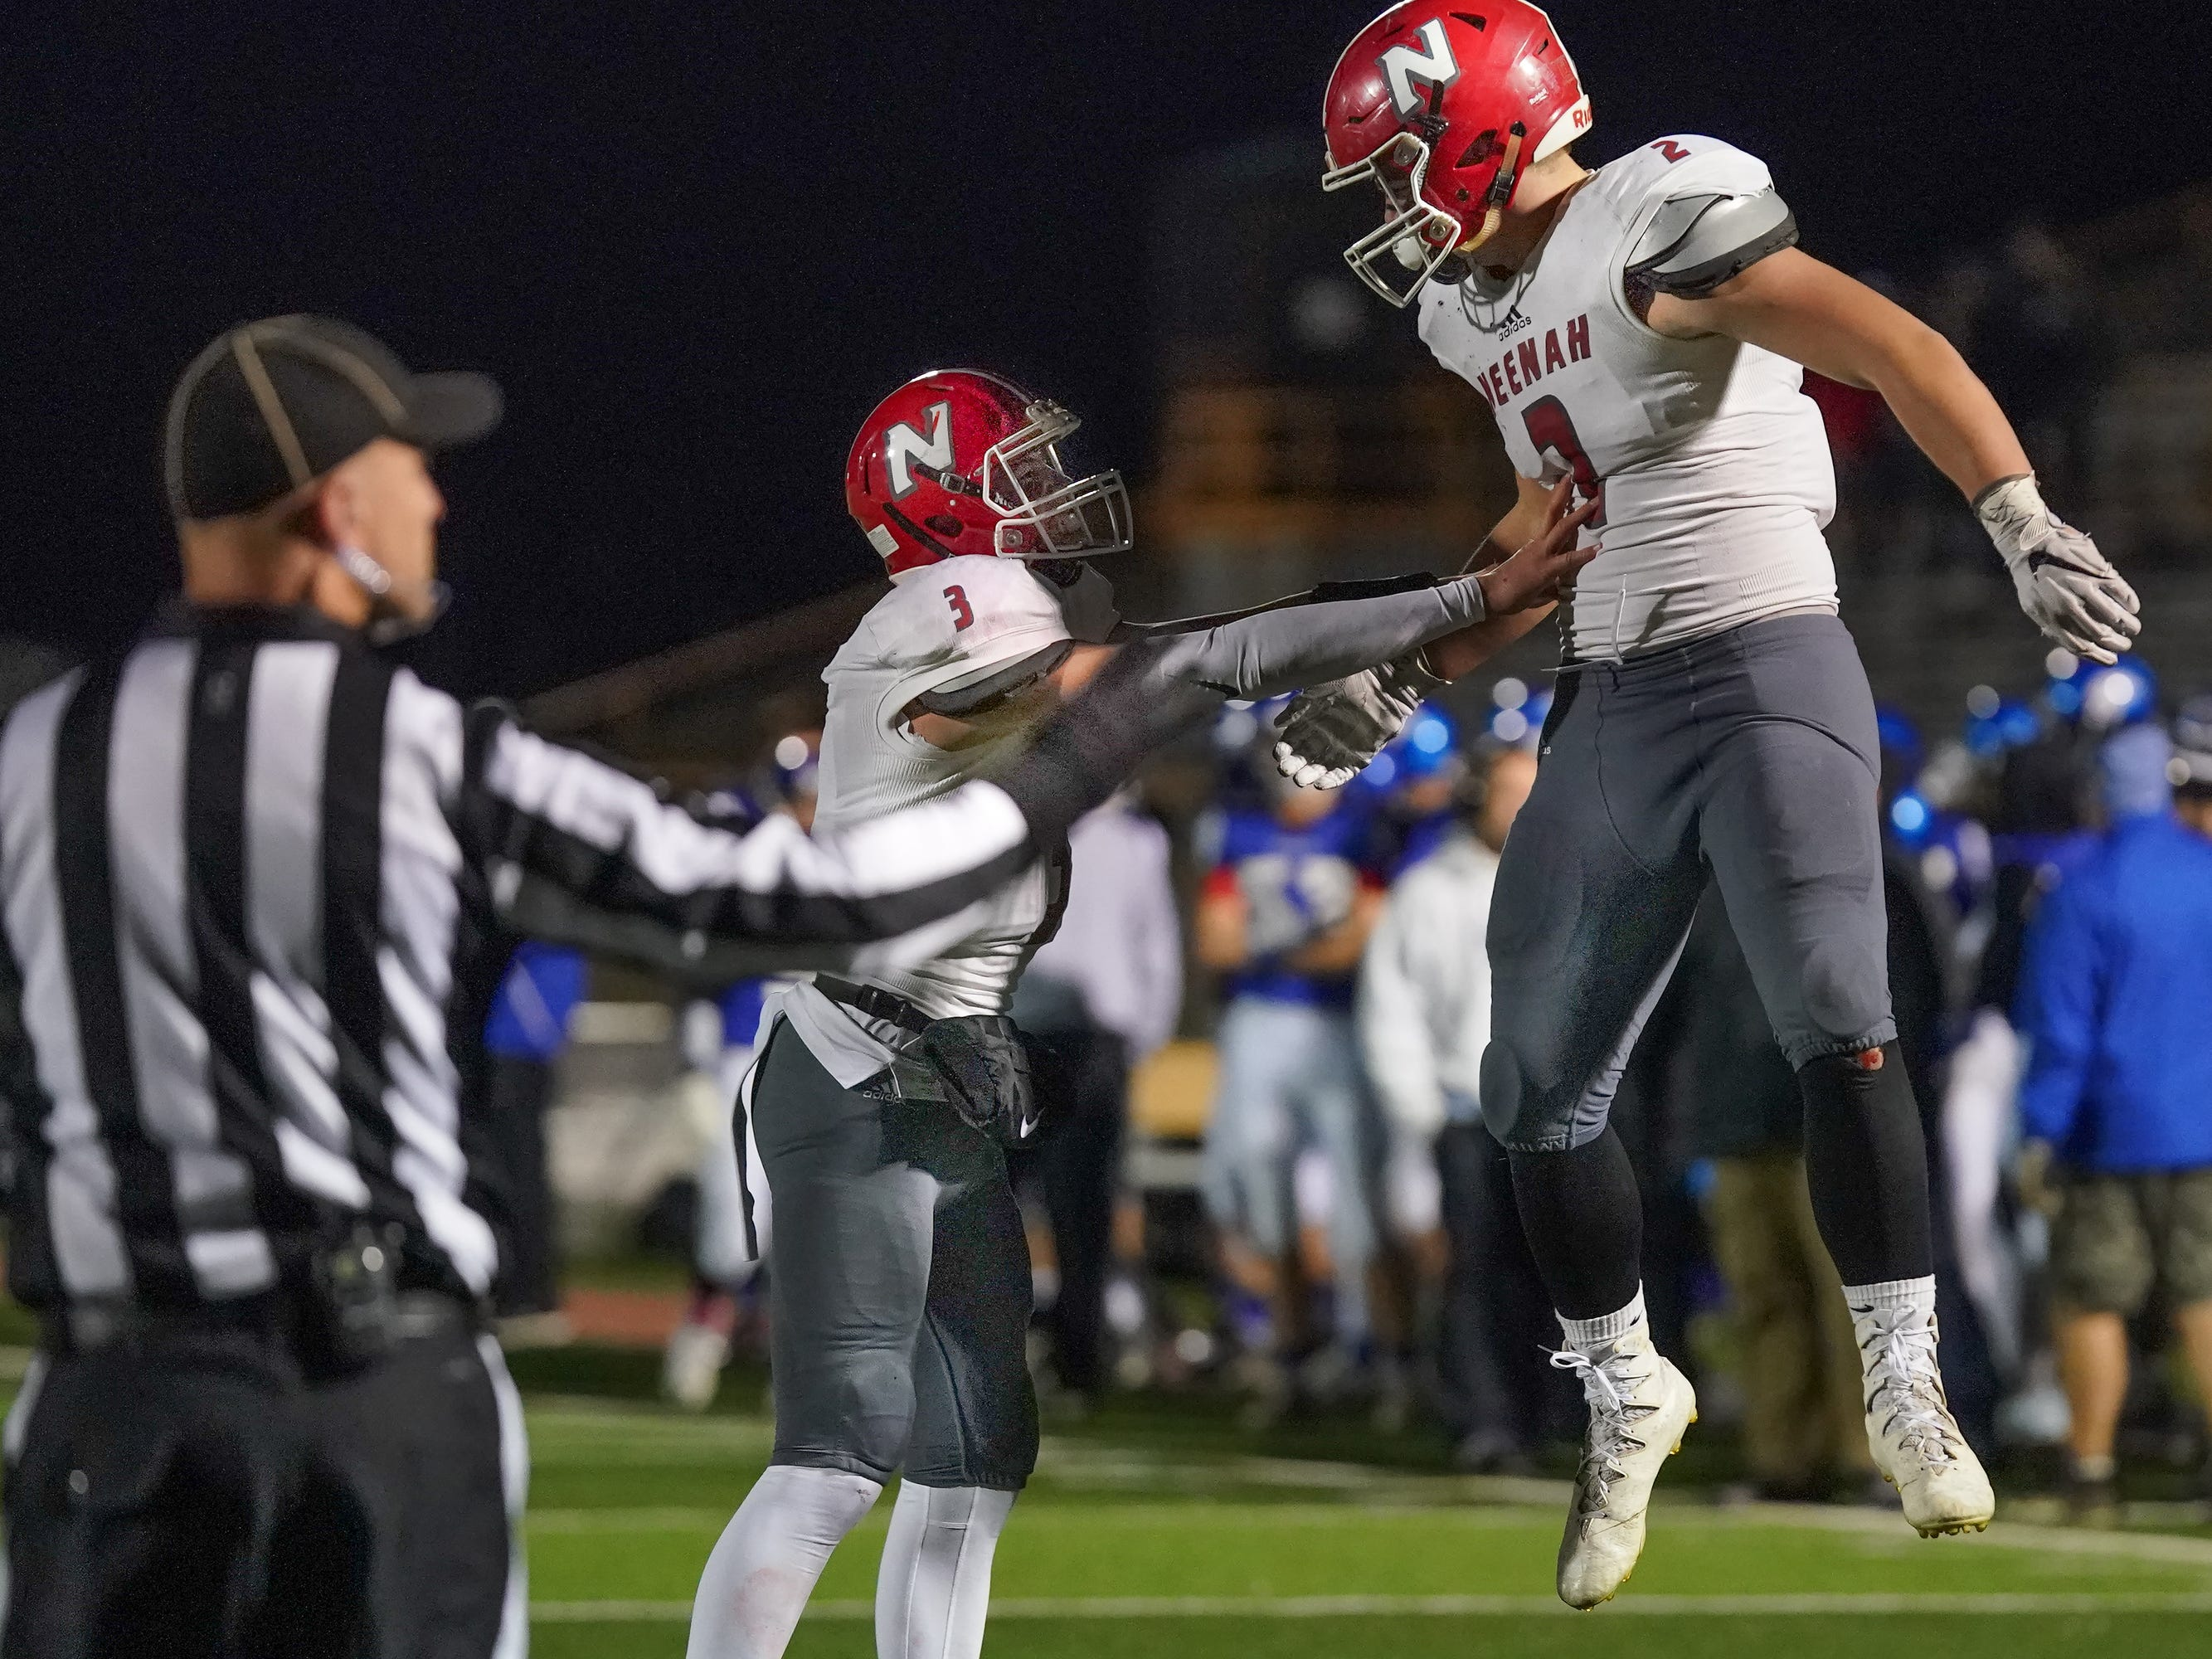 Neenah quarterback Sam Dietrich (3) and Reece Heyerdahl (2) celebrate after a Rocket touchdown. The Oshkosh West Wildcats hosted the Neenah Rockets in an FVA-South conference matchup Friday evening, October 12, 2018 at J. J. Keller Field at Titan Stadium.